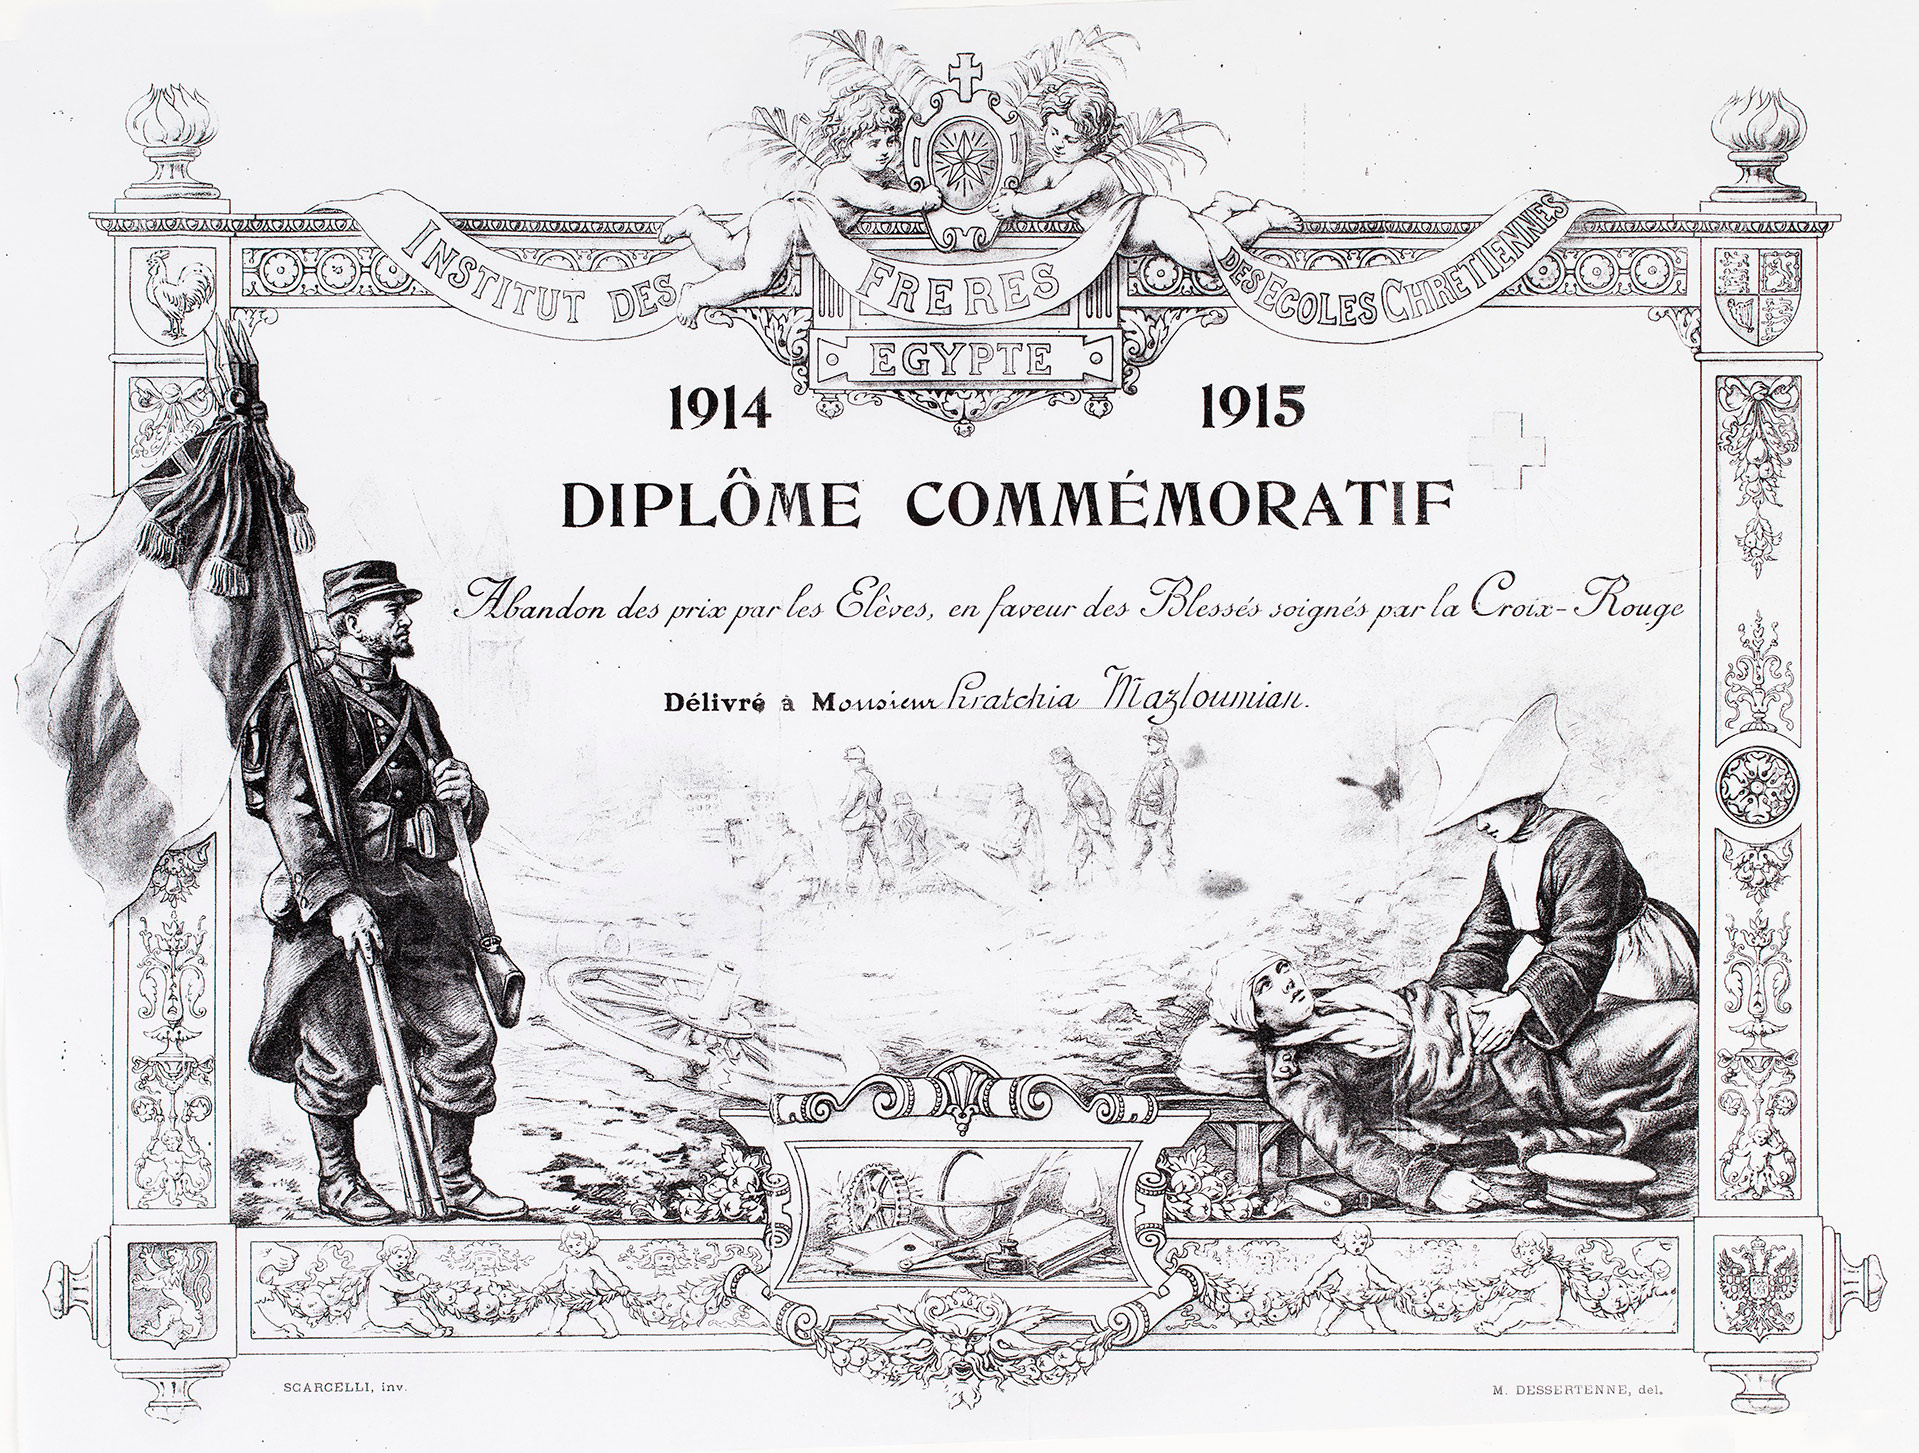 Photocopy of a diploma certificate.